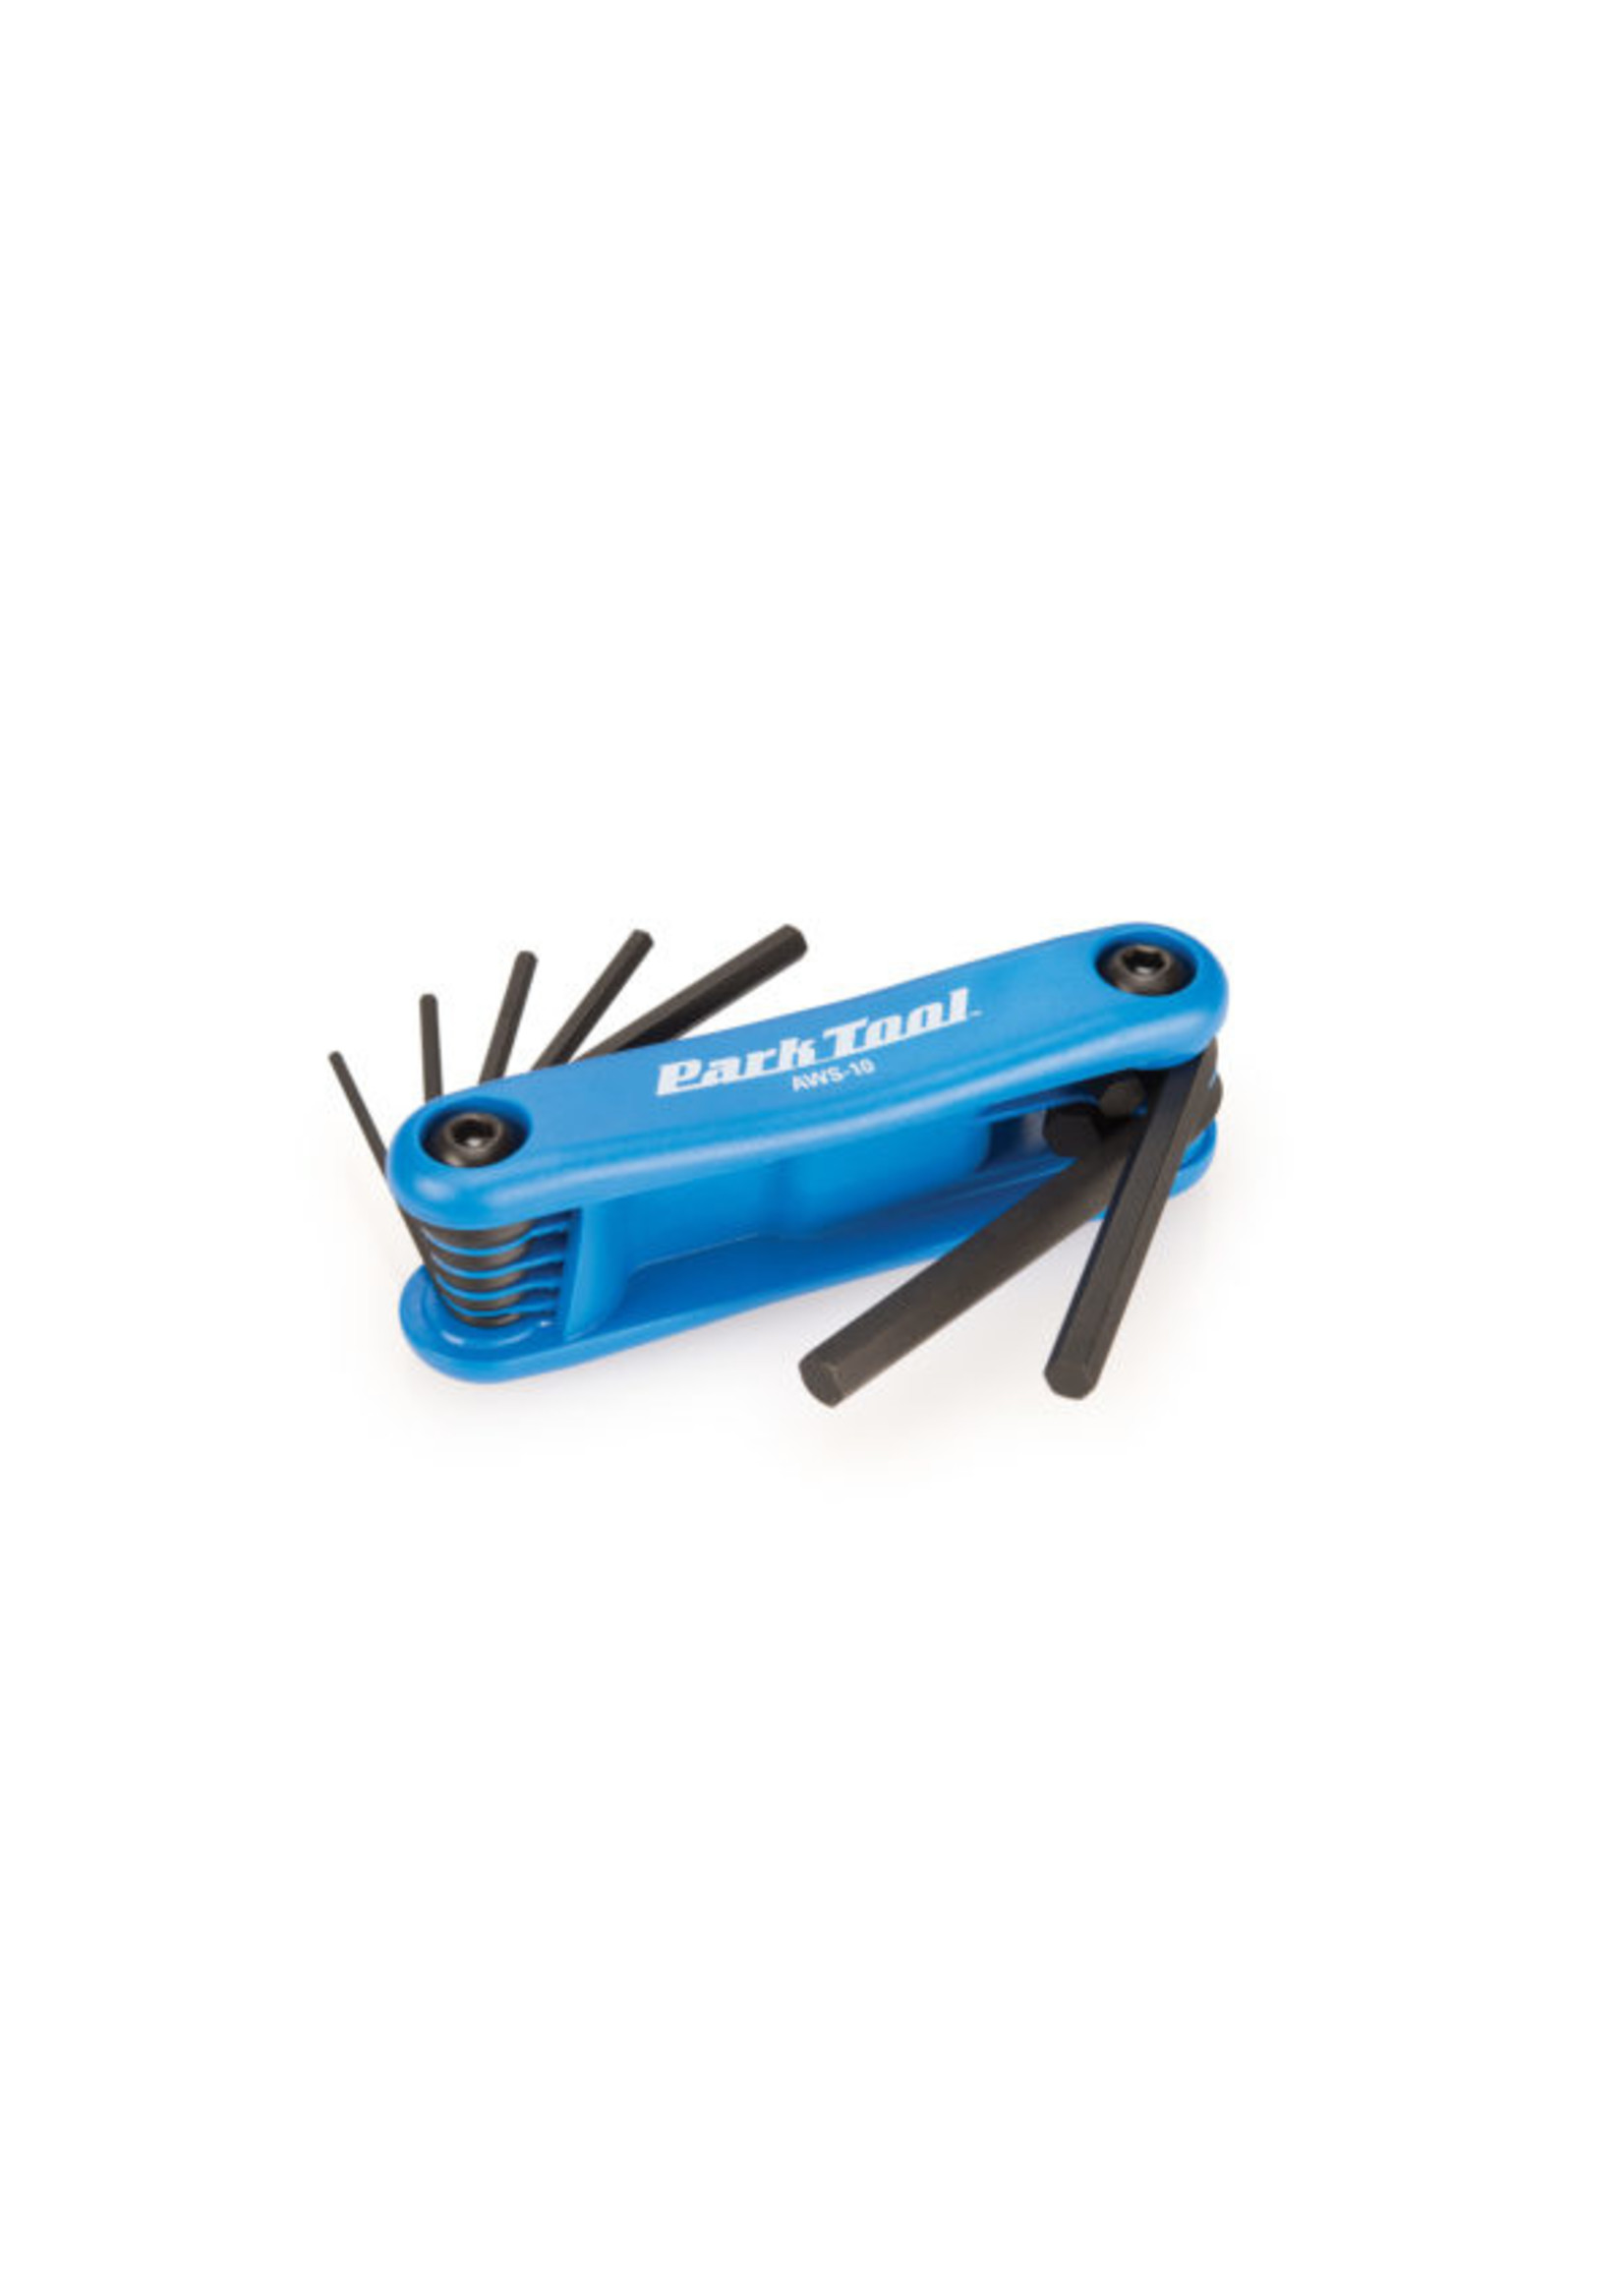 Park Tool AWS-10, Folding hex wrench set, 1.5mm, 2mm, 2.5mm, 3m, 4mm, 5mm and 6mm